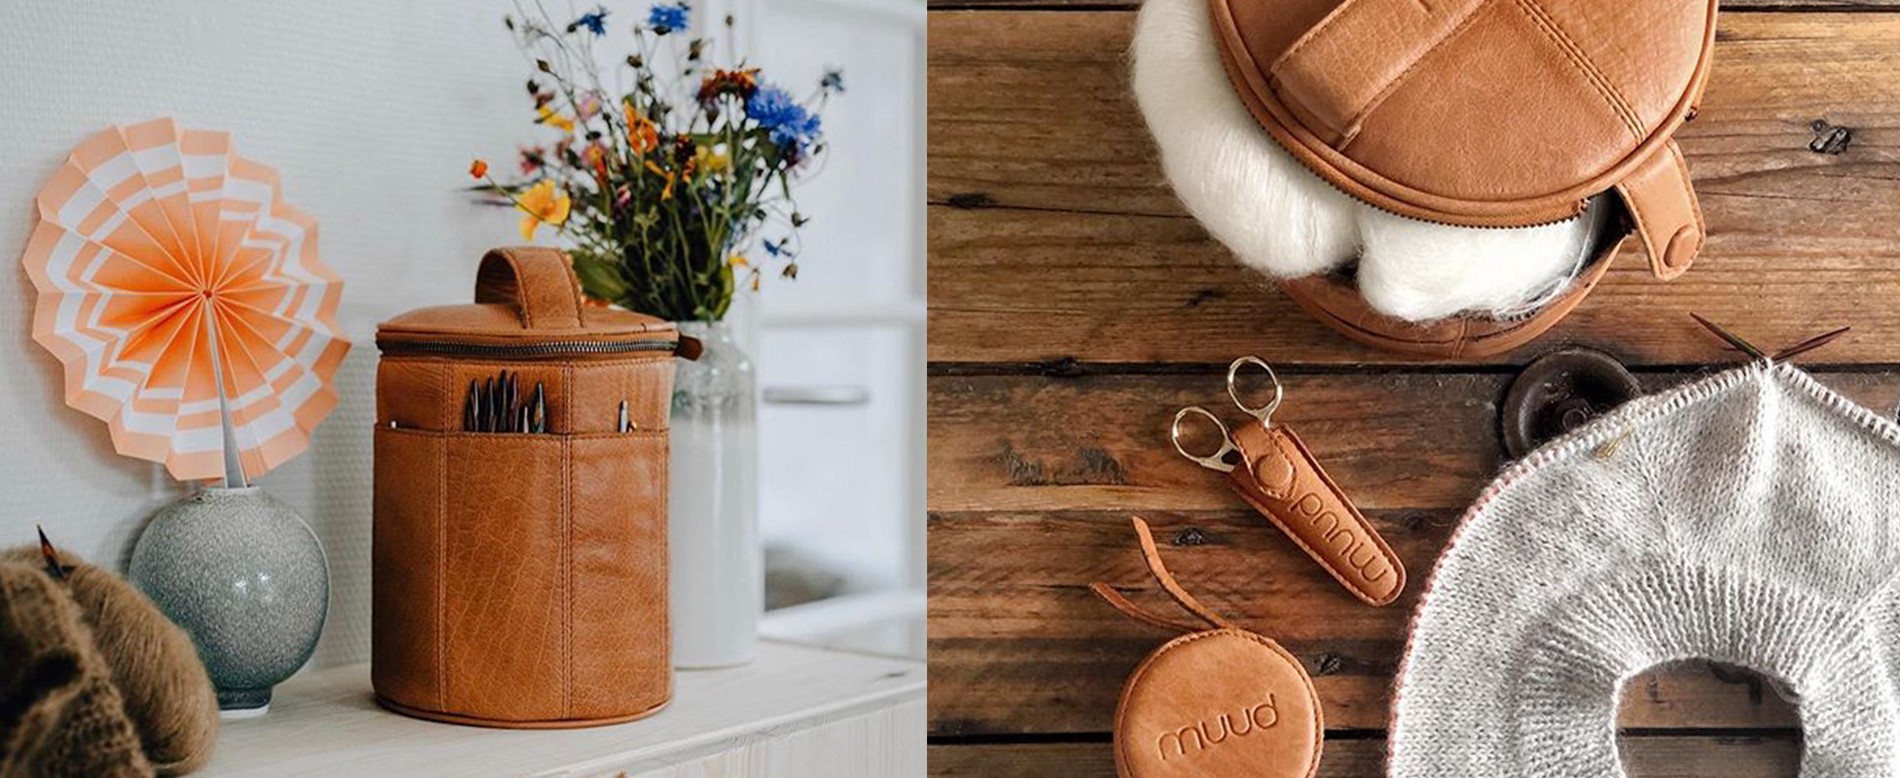 100% Leather bags and accessories